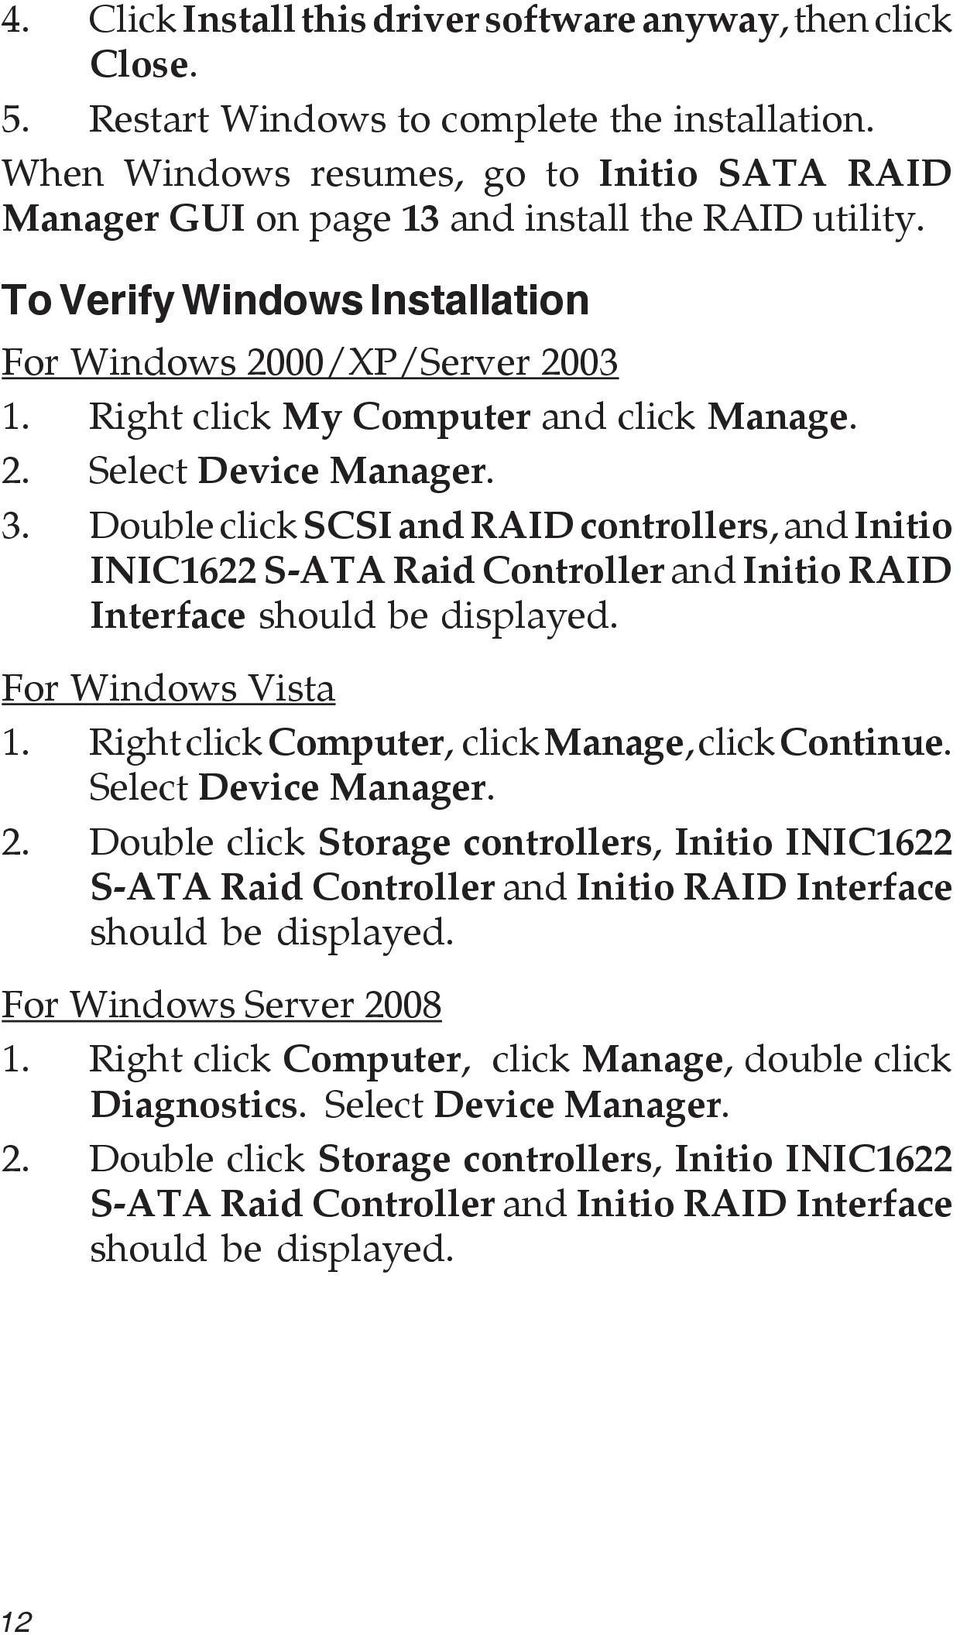 Right click My Computer and click Manage. 2. Select Device Manager. 3. Double click SCSI and RAID controllers, and Initio INIC1622 S-ATA Raid Controller and Initio RAID Interface should be displayed.